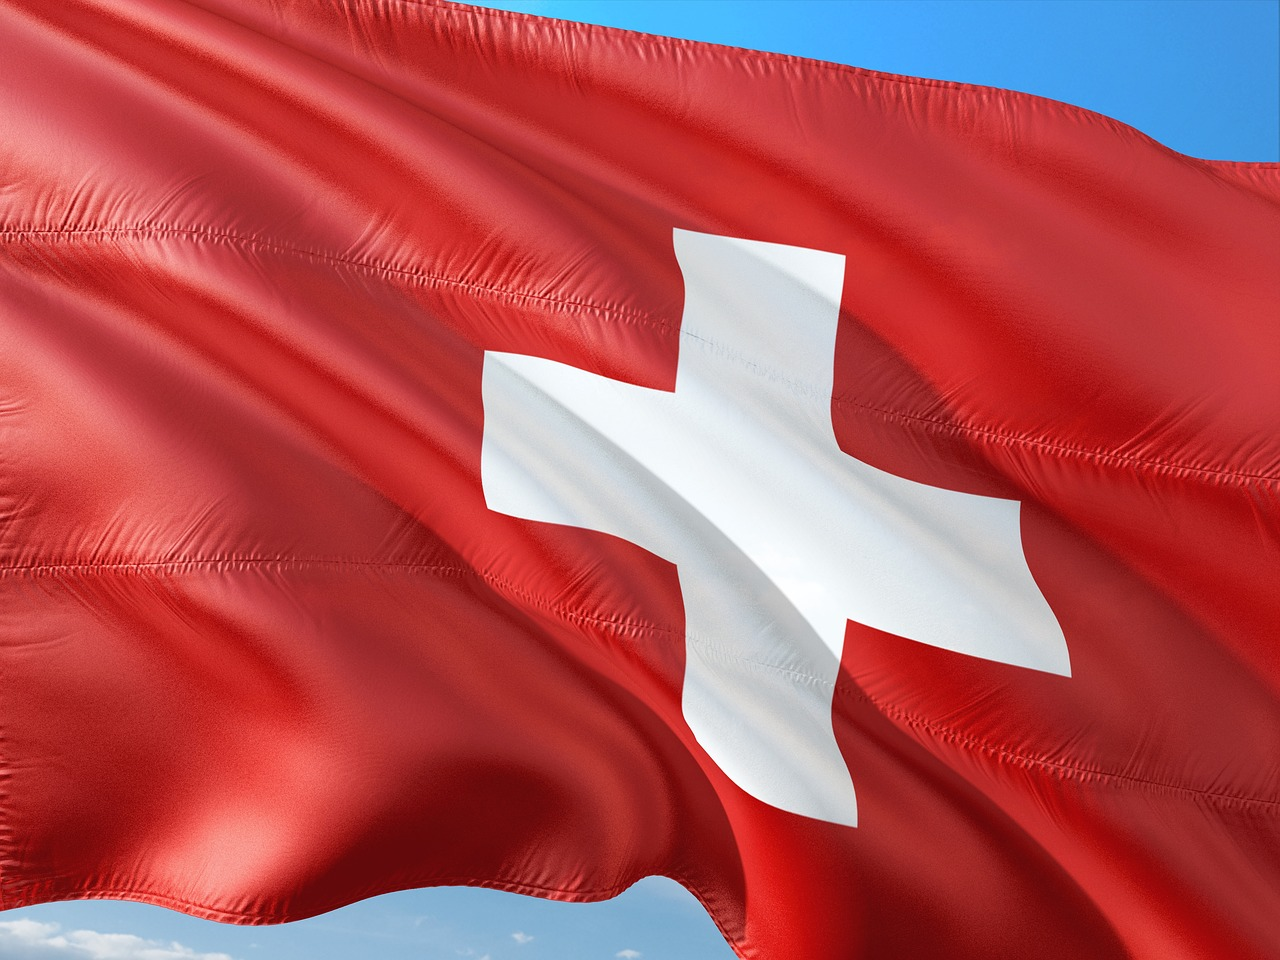 switzerland-sick-of-and-sick-from-5g-—-nationwide-revolt-planned-for-september-21